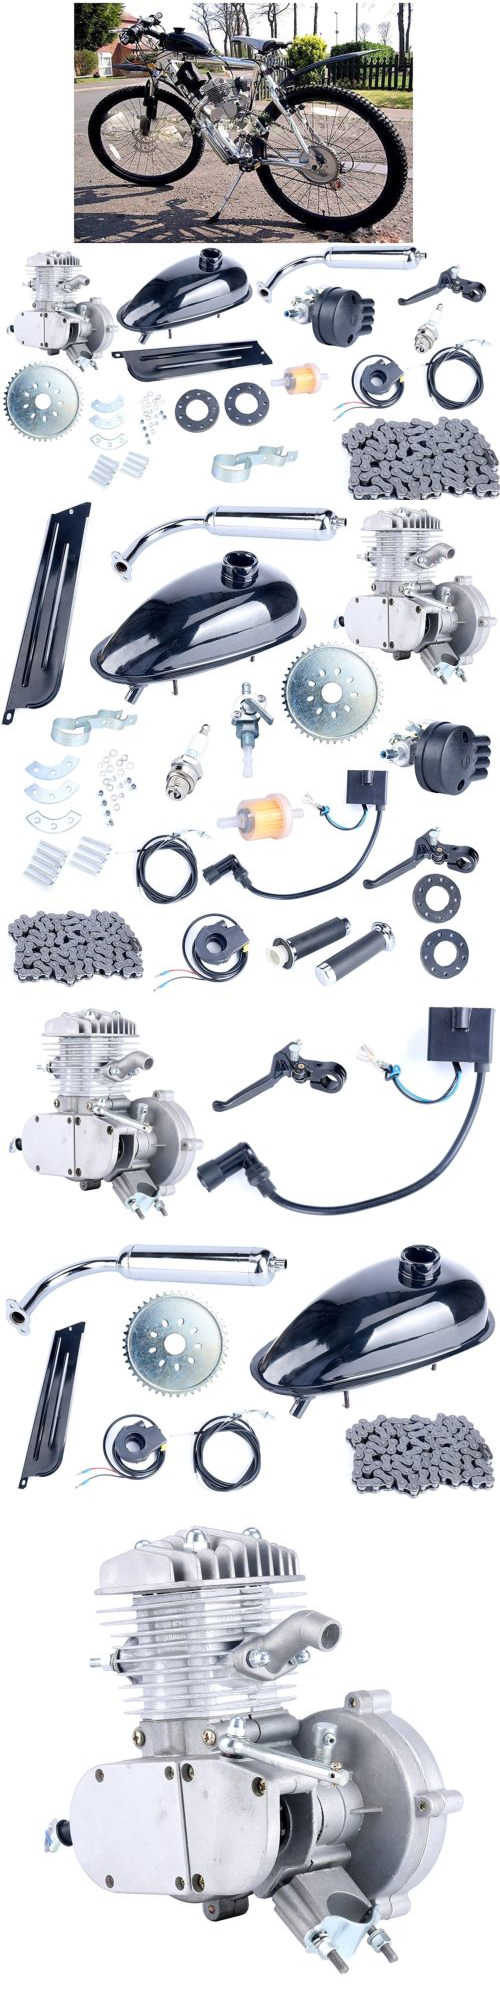 Parts And Accessories 11332 Silver 80cc Bike Bicycle Motorized 2 Battery Charger Wiring Harness Razor Izip Pocket Bikes Chopper Ebay Cycle Motor Petrol Gas